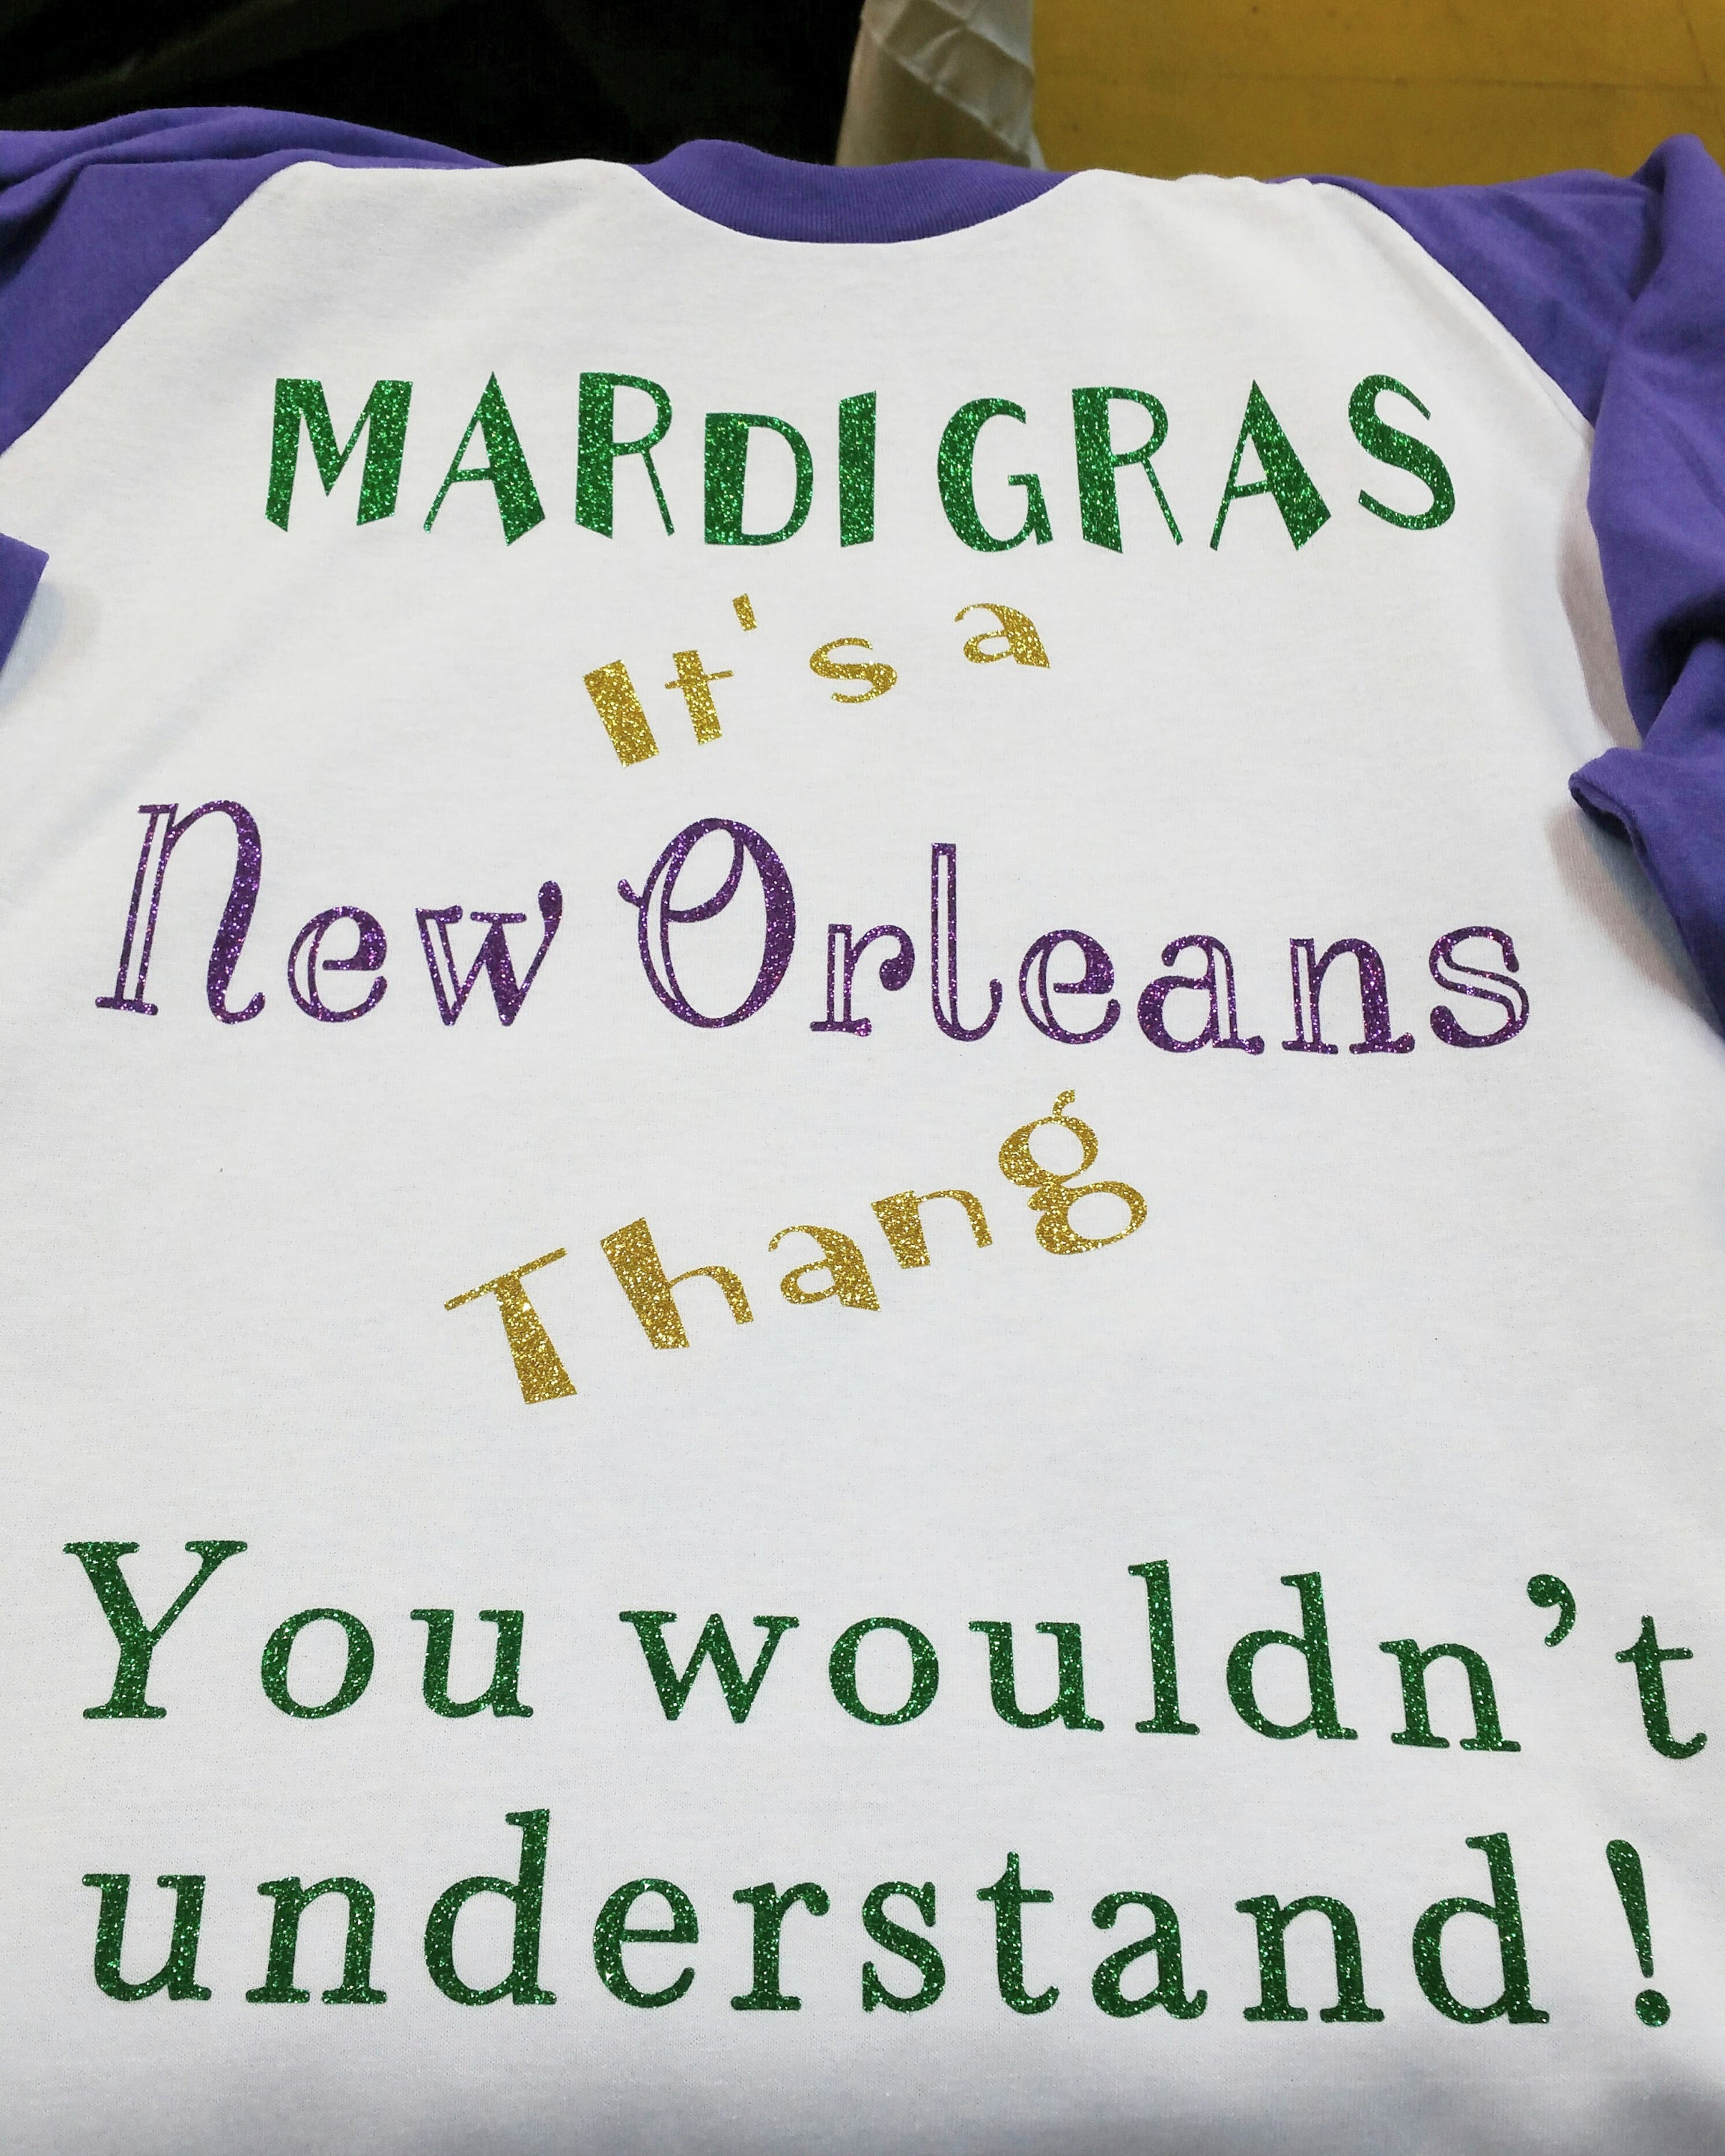 Mardi Gras baseball shirt (purple sleeves)